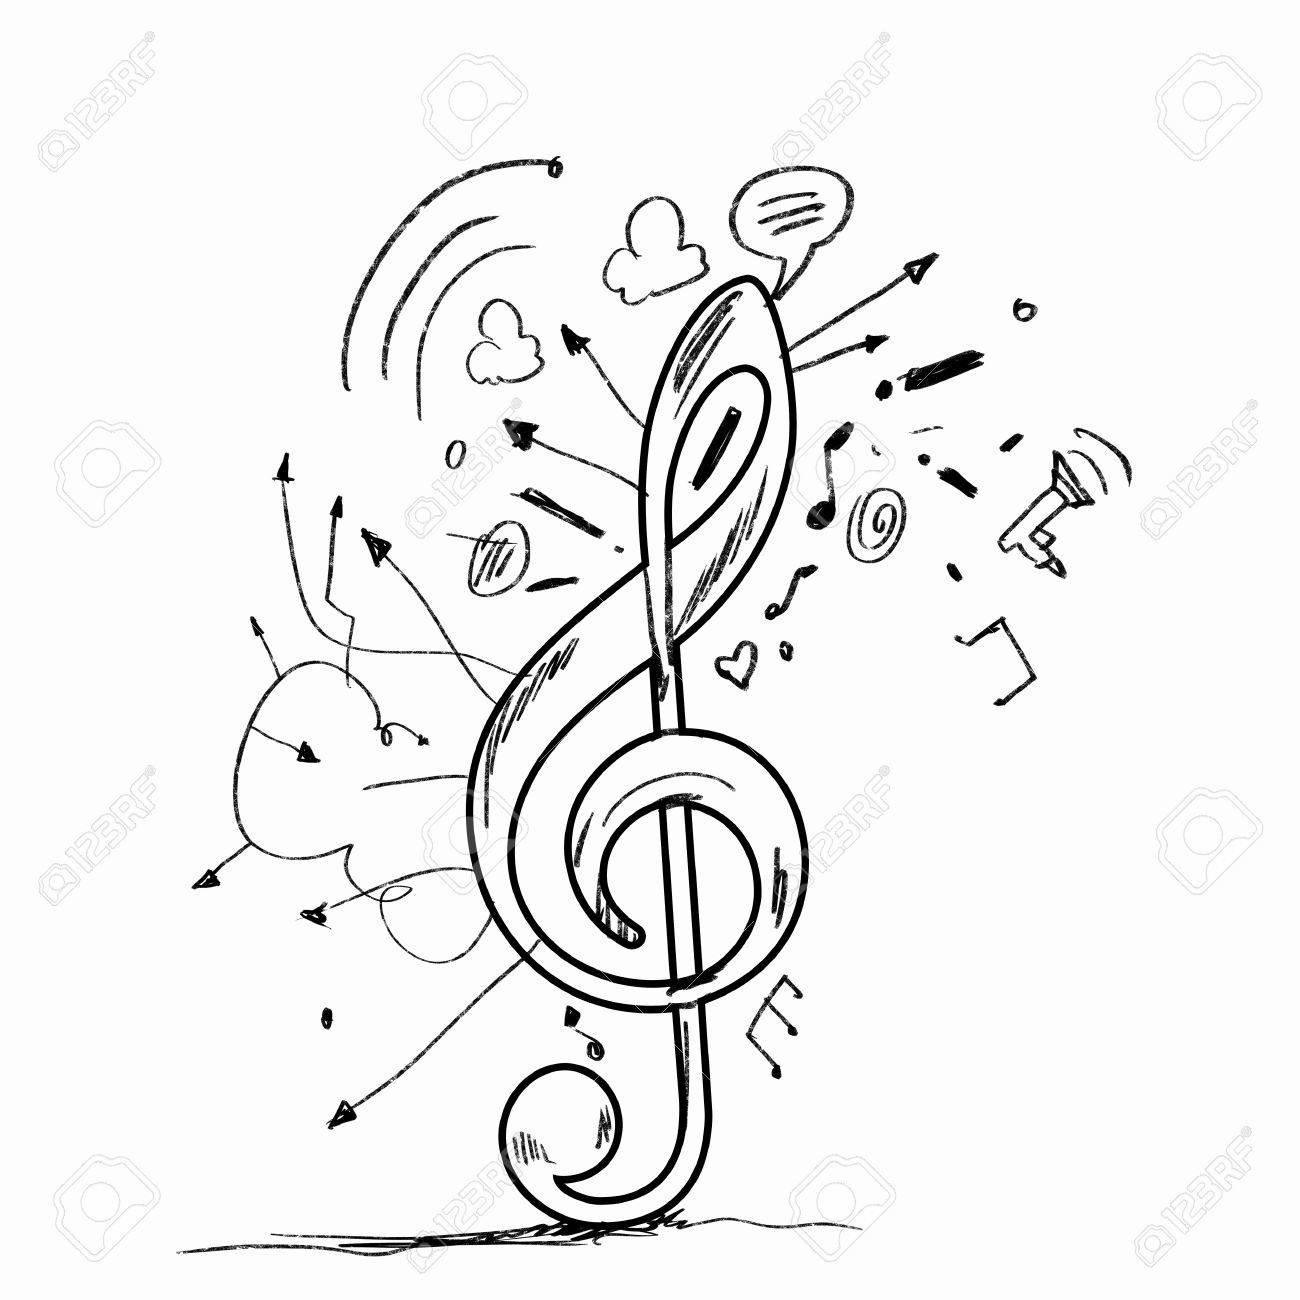 sketch image of music clef icon against white background stock photo 21482284